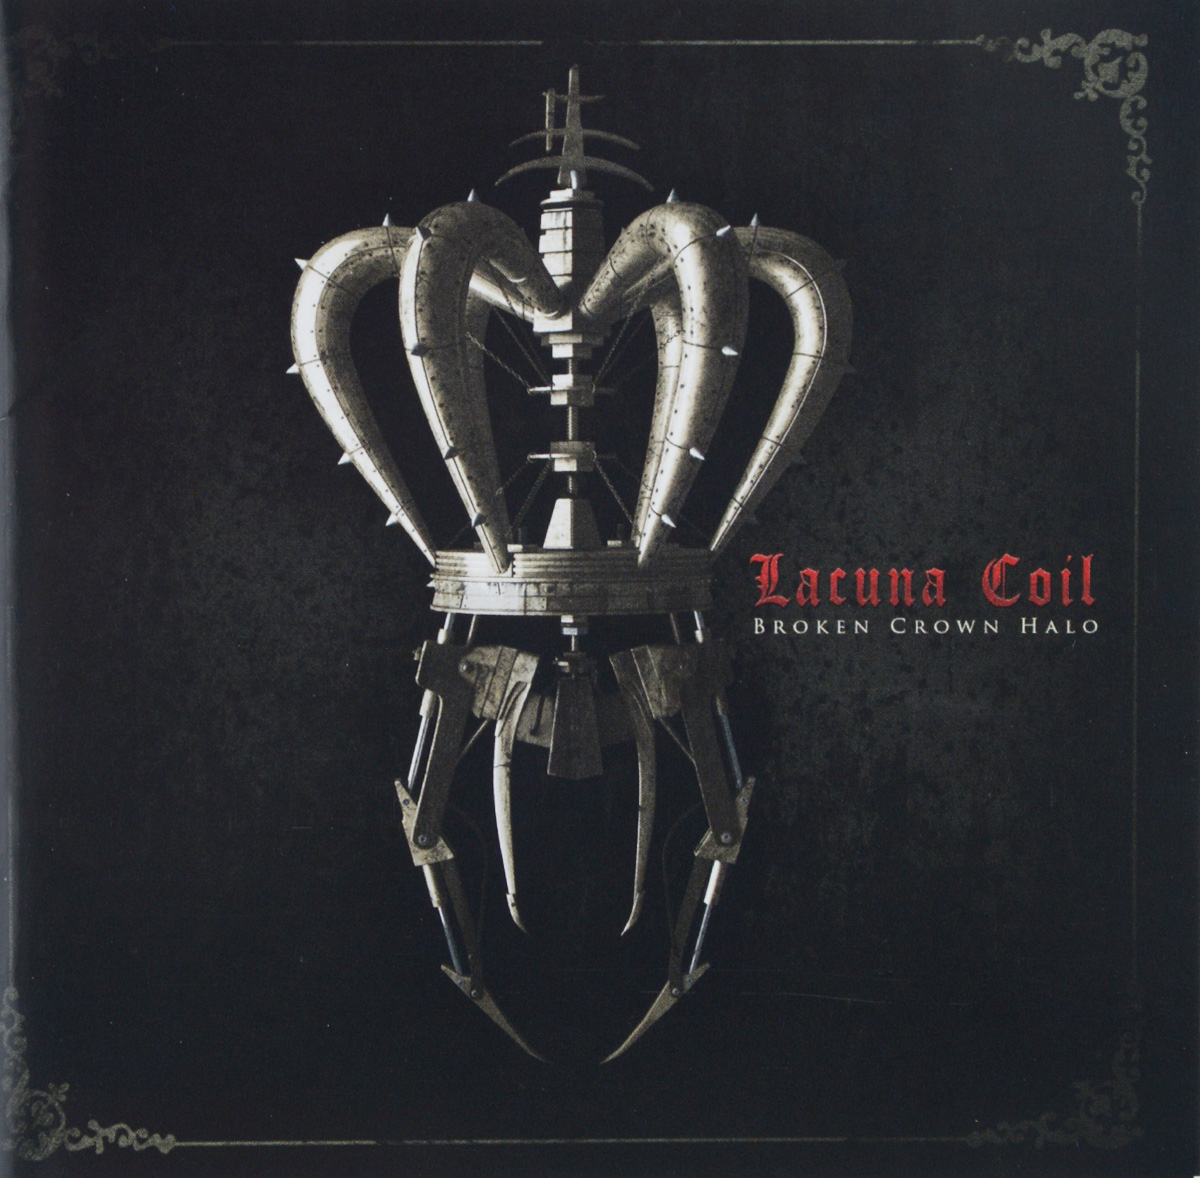 Lacuna Coil. Broken Crown Halo